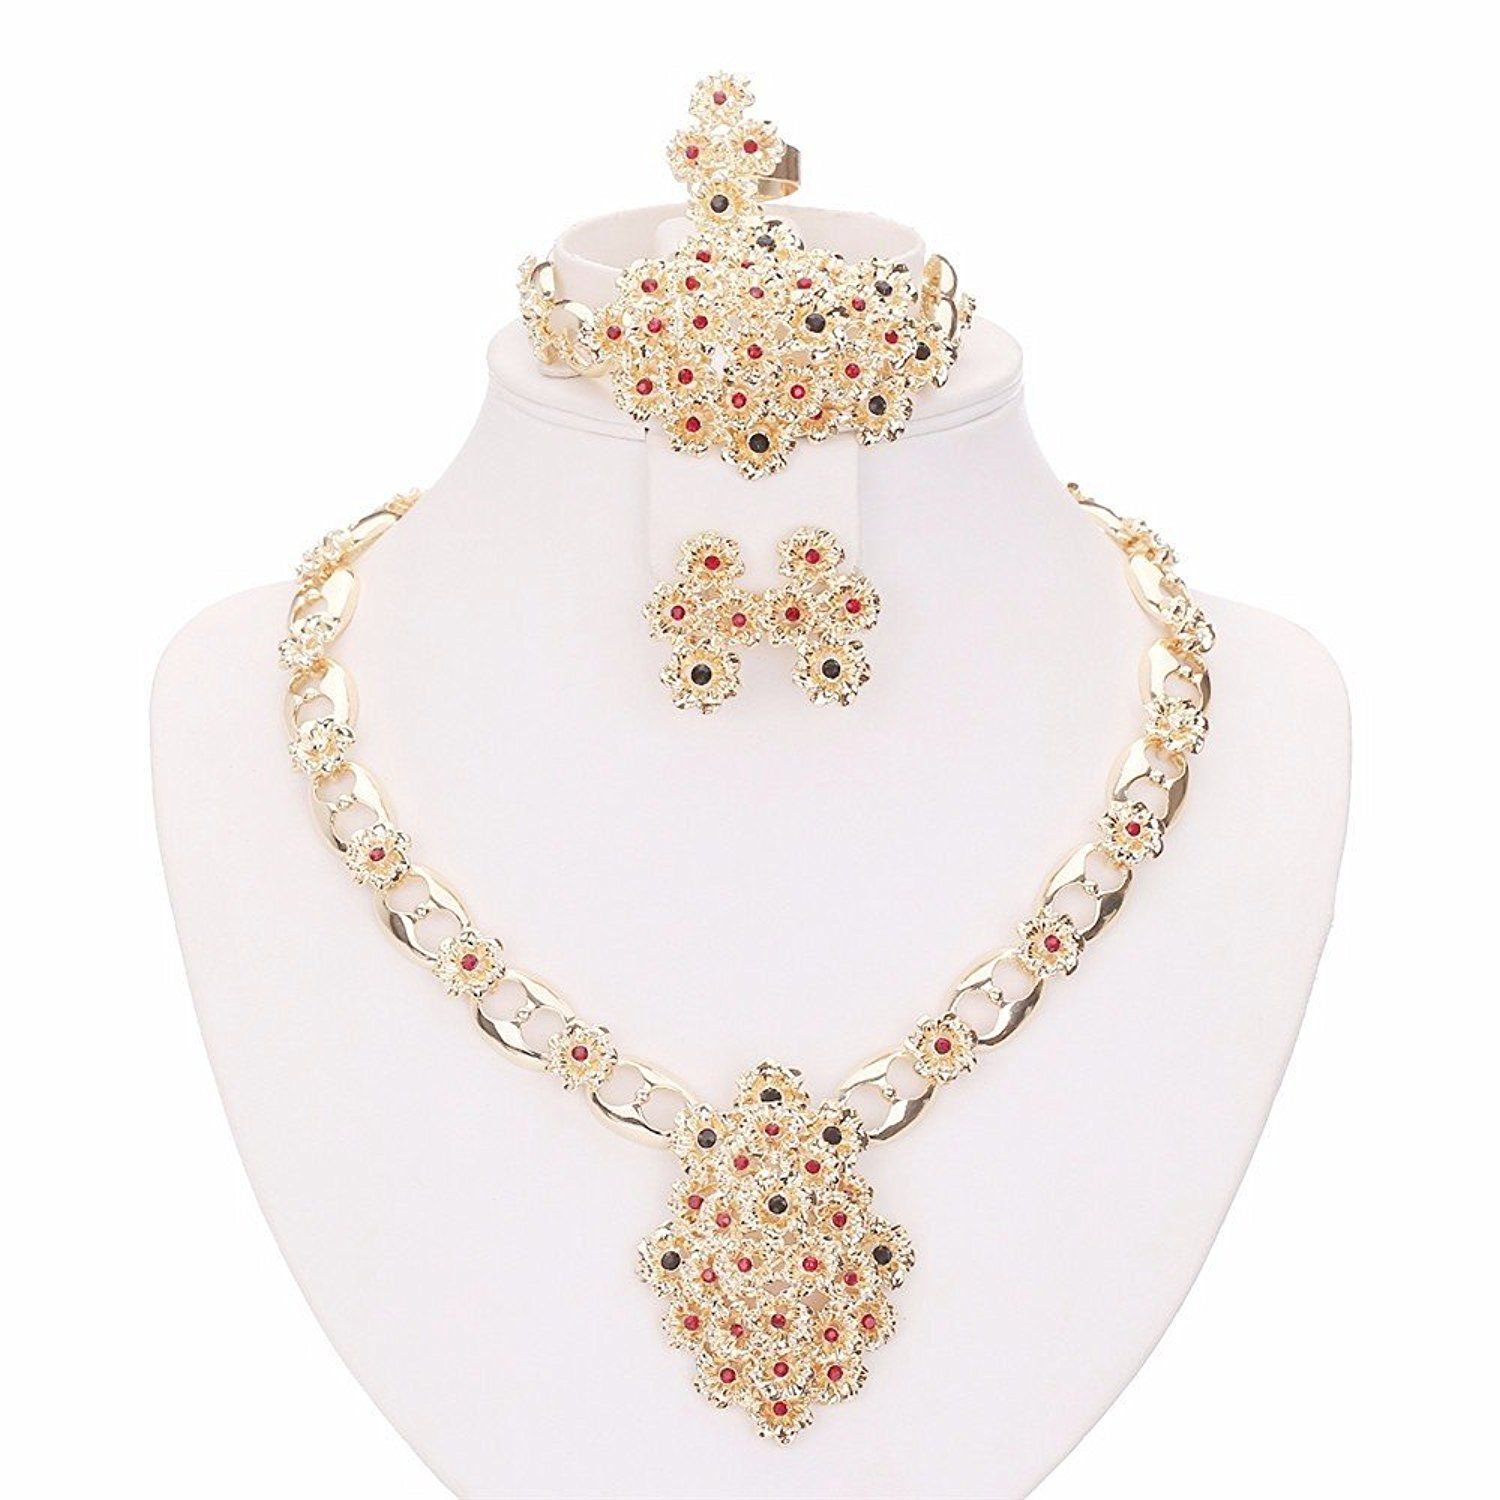 Moochi k gold plated colorful flower pendant hollow chain jewelry